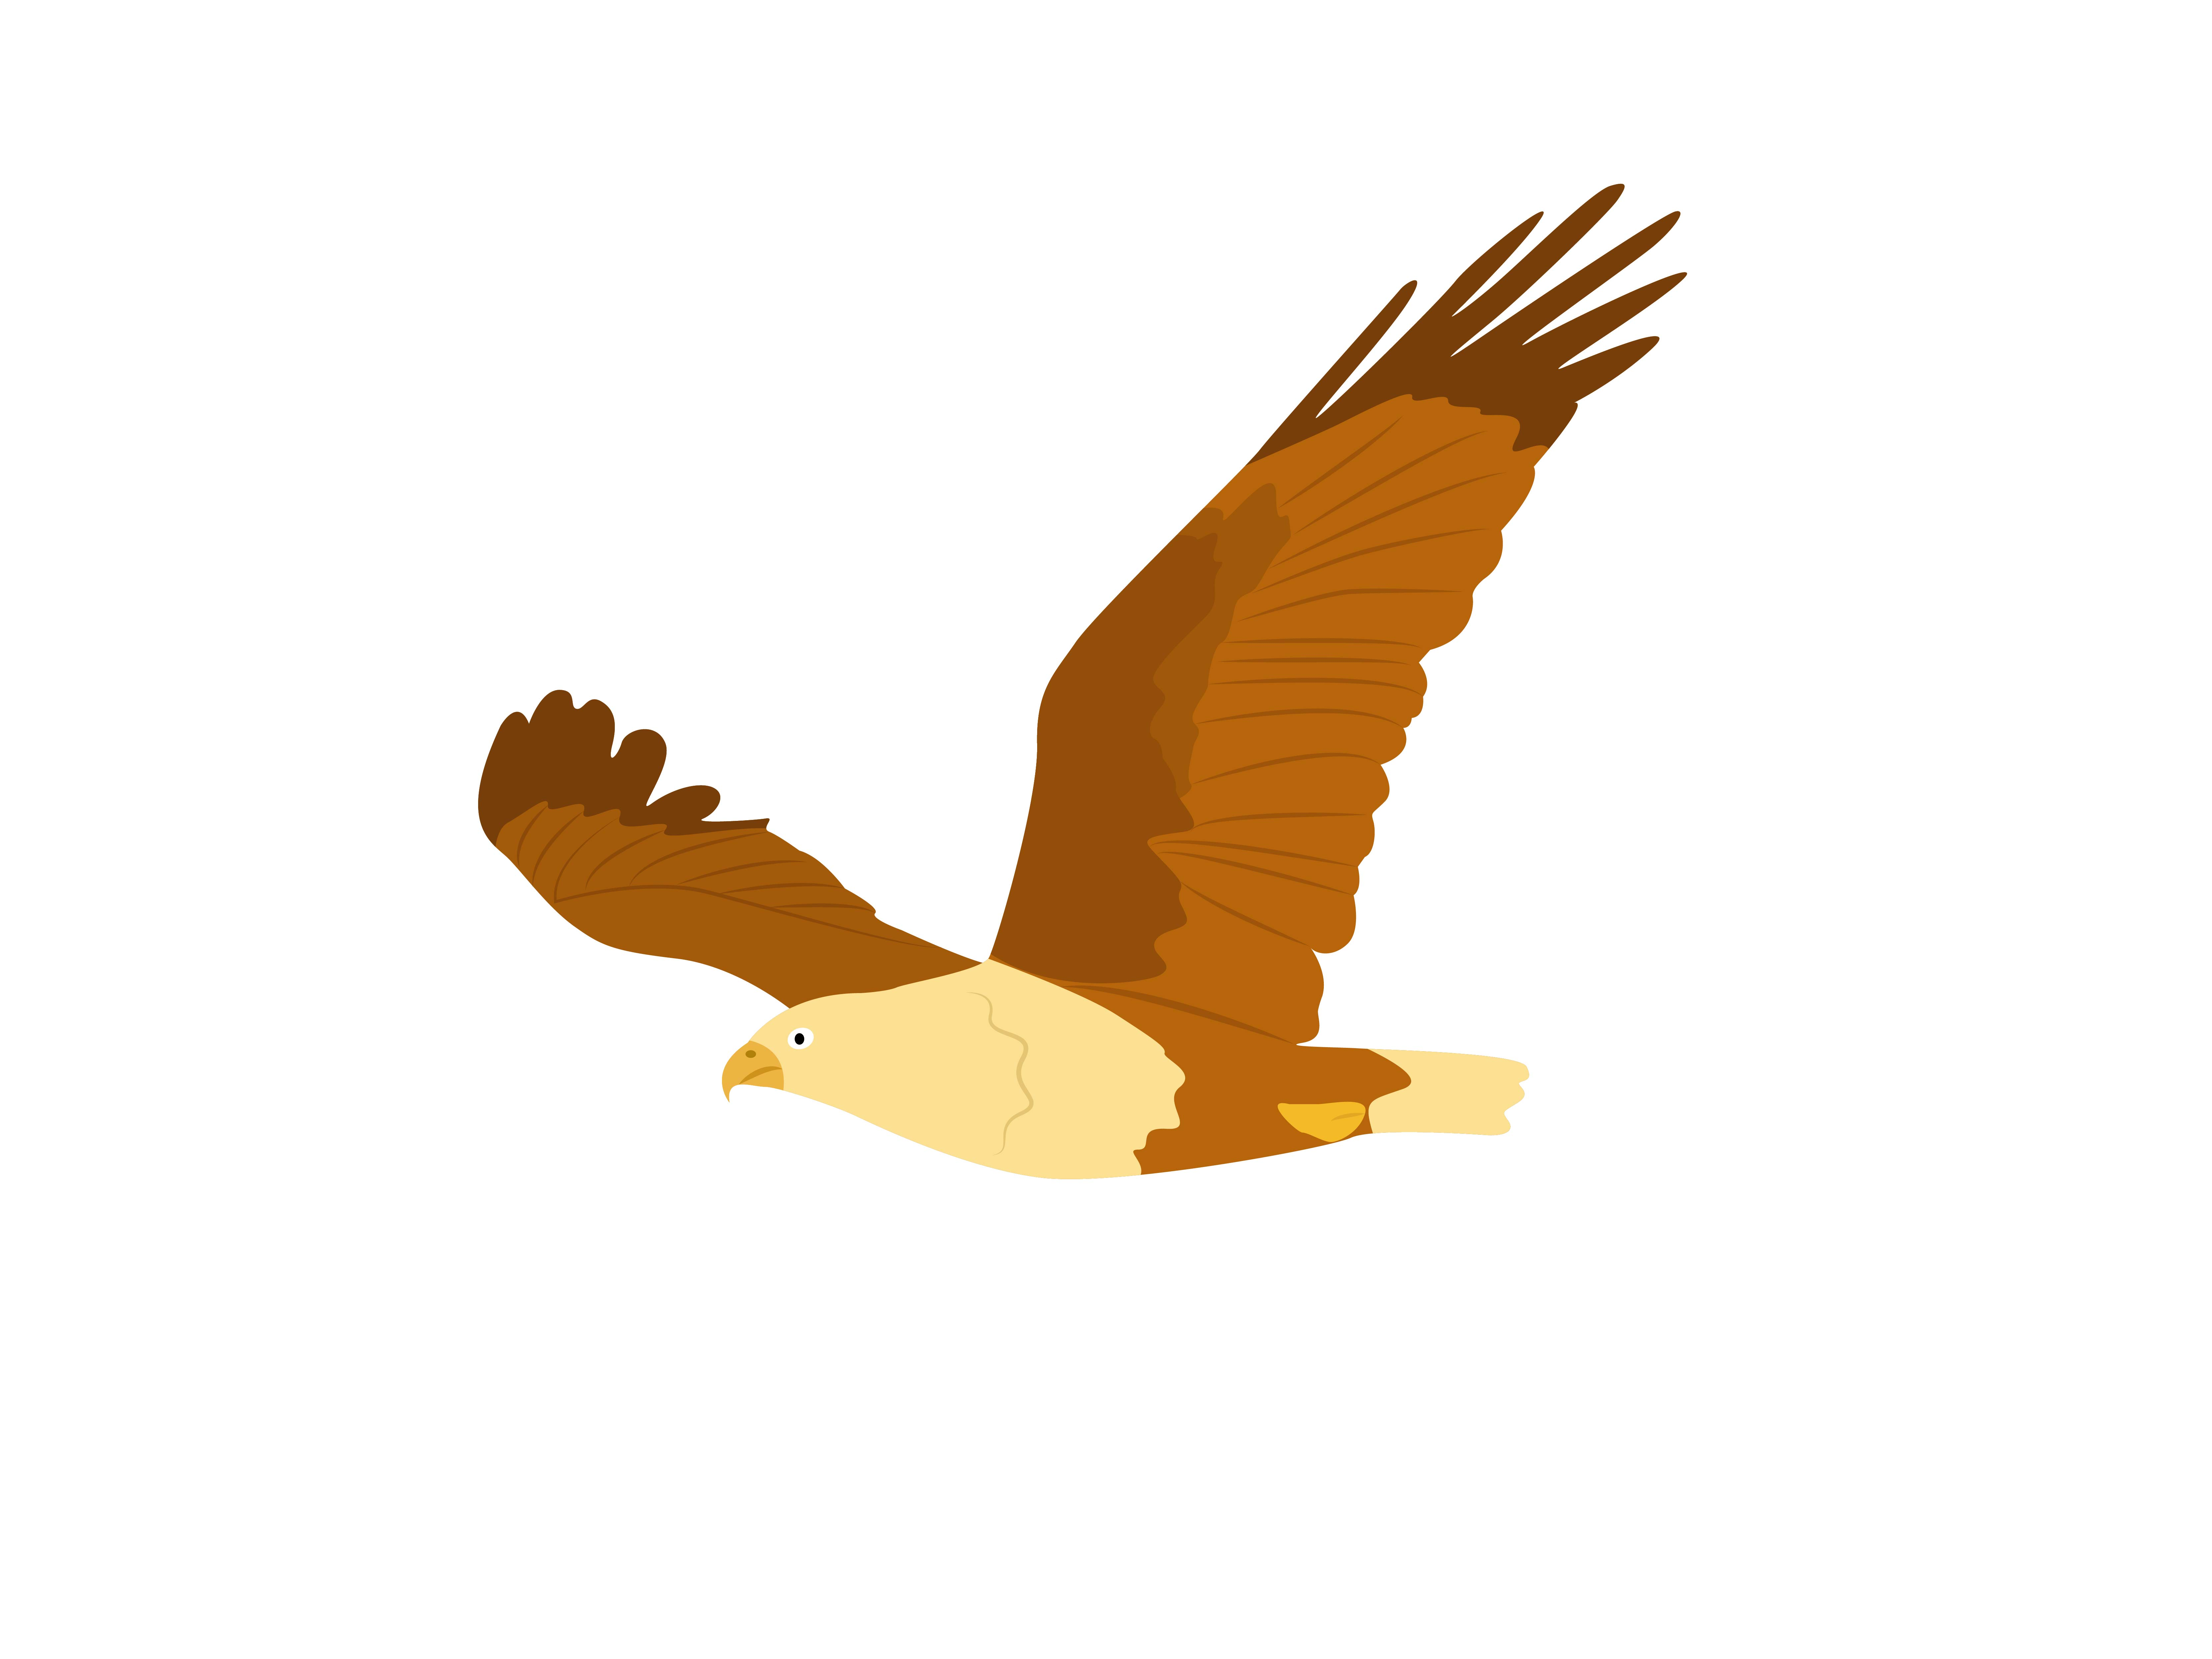 Download Free Eagle Bird Animal Graphic By Archshape Creative Fabrica for Cricut Explore, Silhouette and other cutting machines.